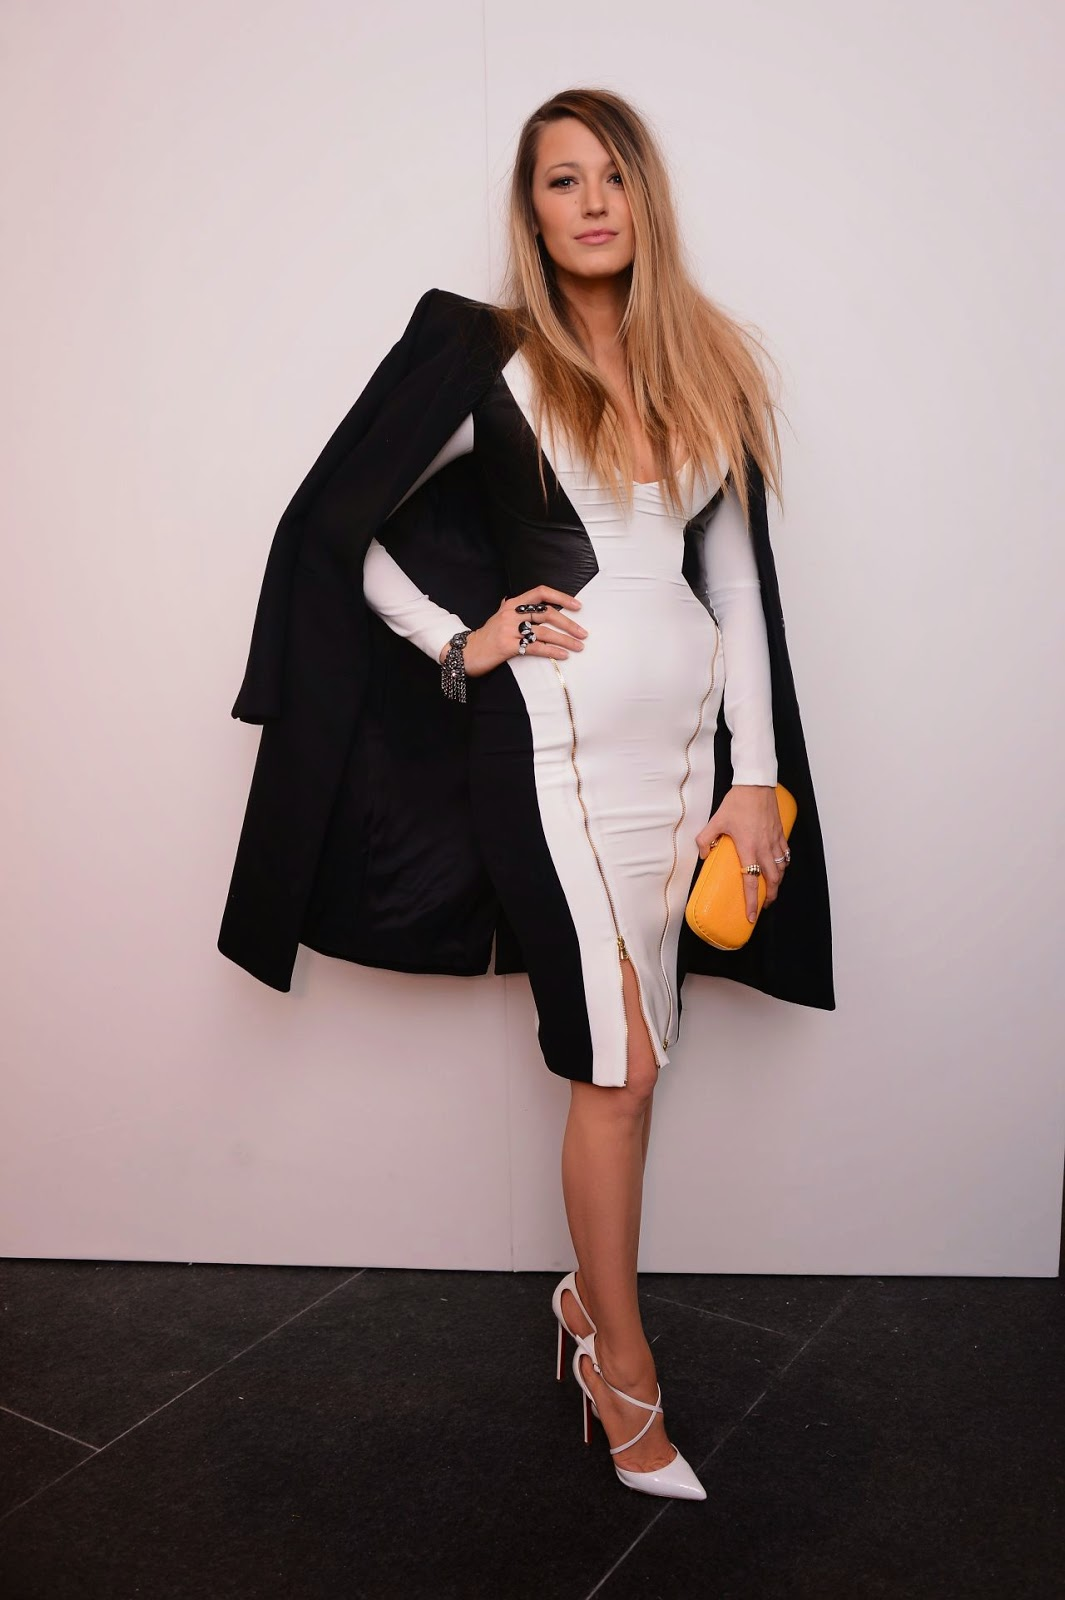 Blake Lively shows post-baby body at the New York Fall/Winter 2015 Fashion Show